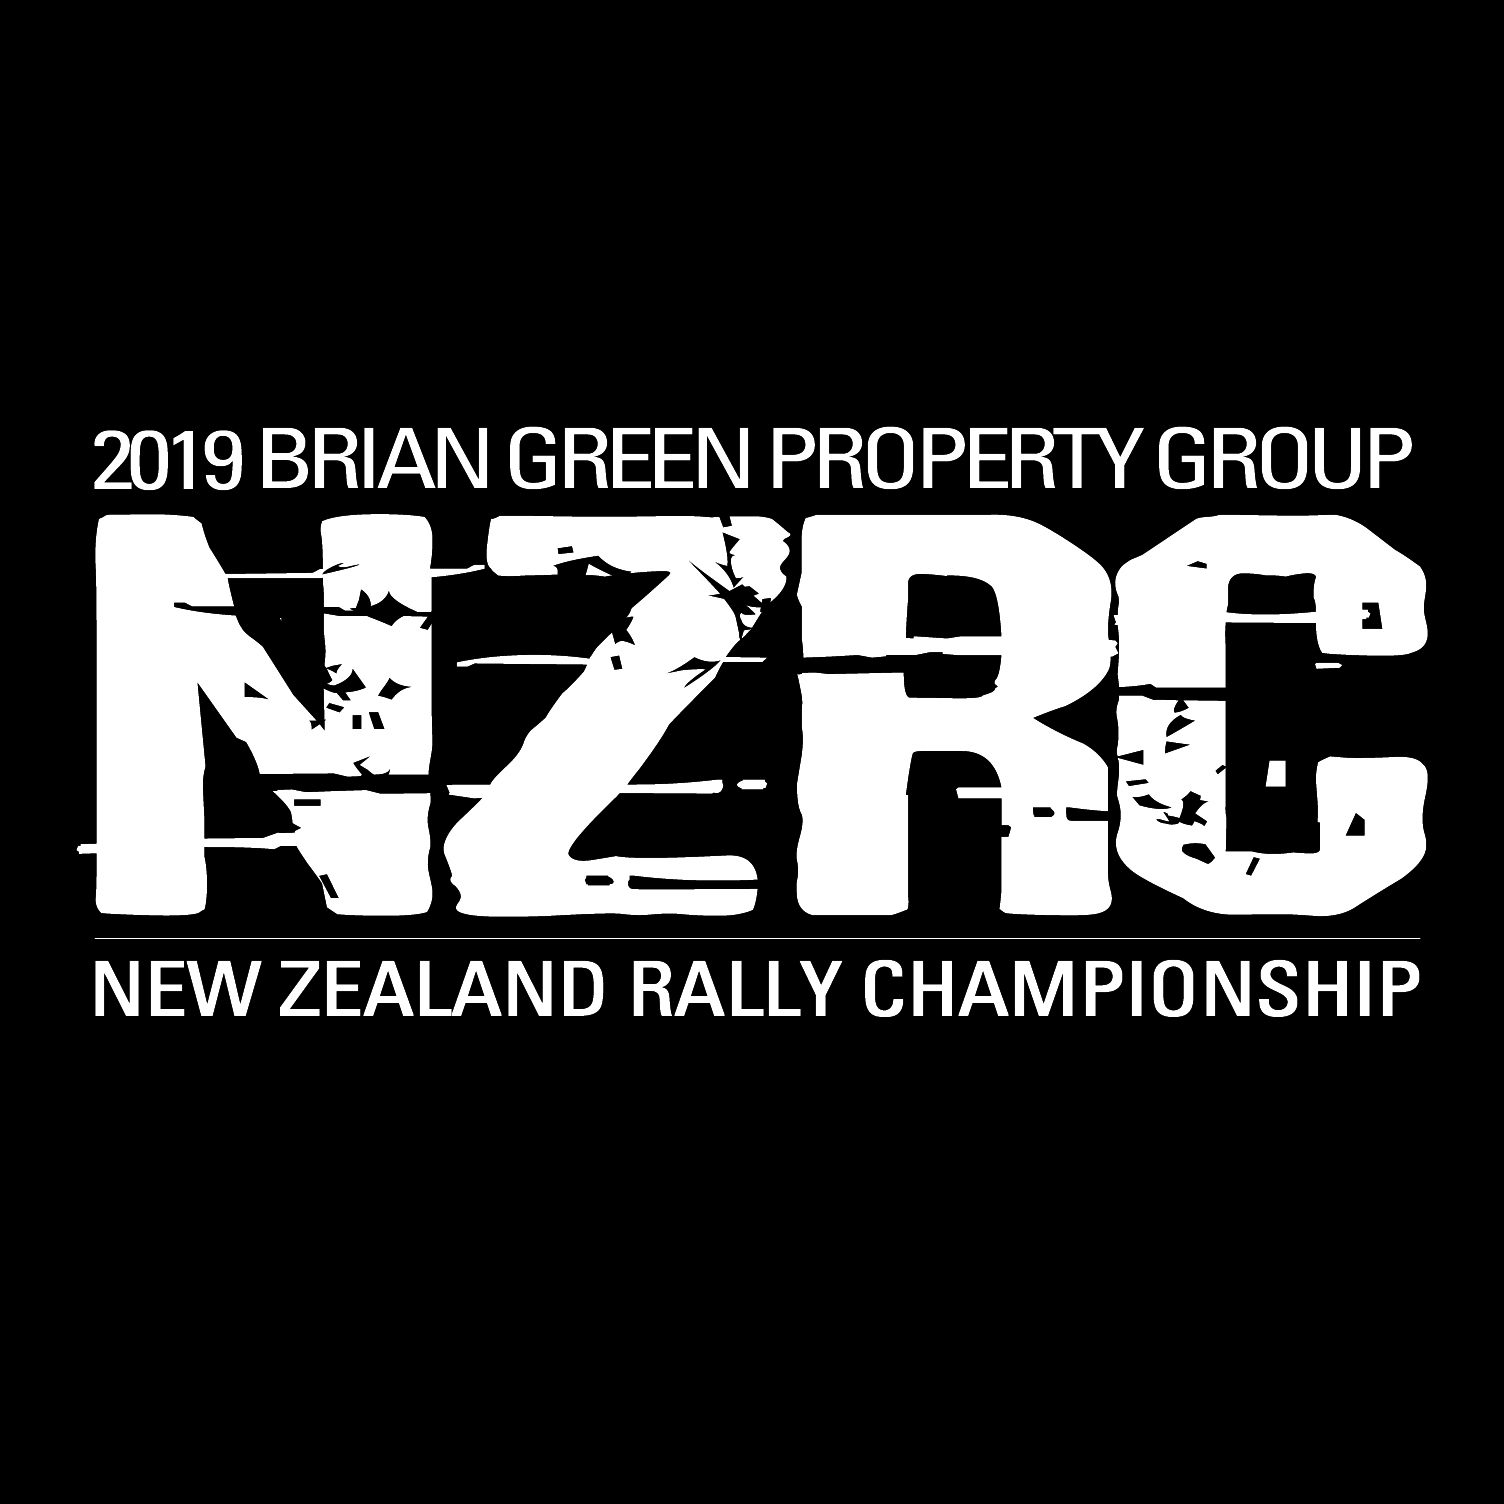 No 2020 New Zealand Rally Championship | :: Brian Green Property Group New Zealand Rally Championship ::